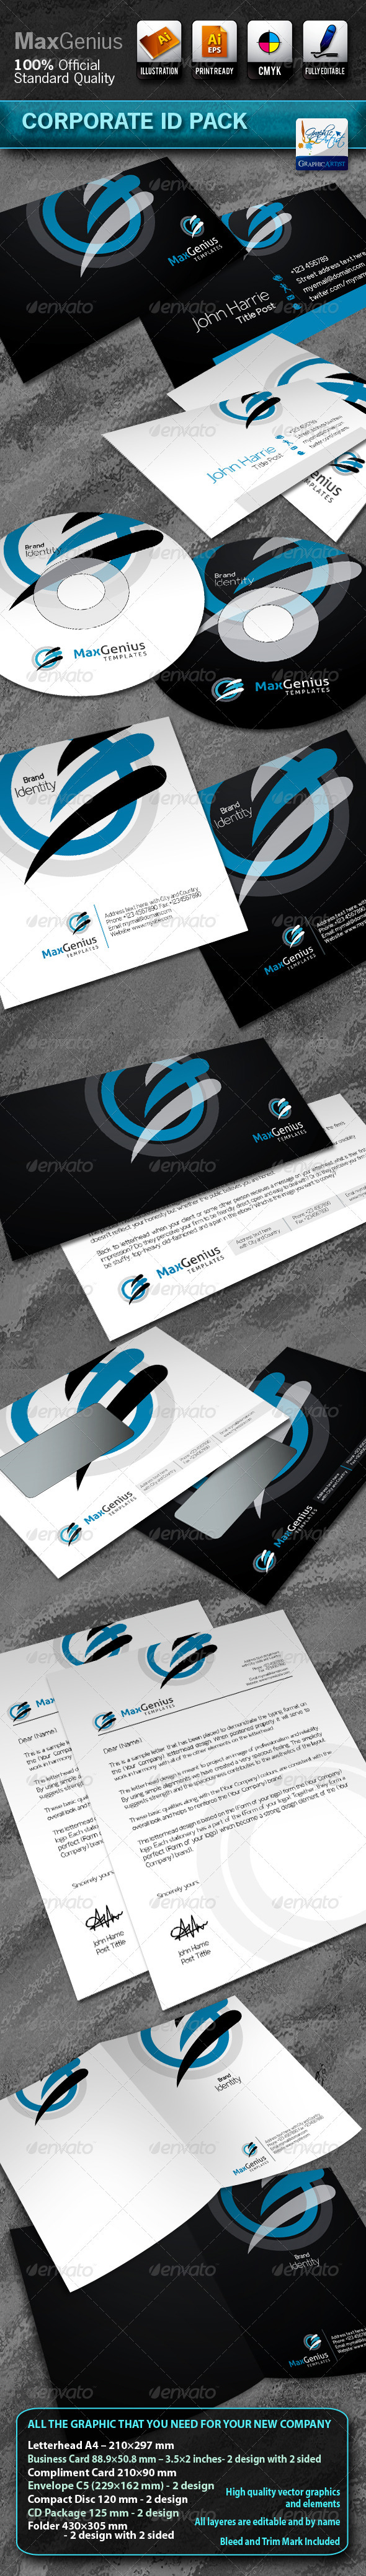 MaxGenius Business Corporate ID Pack With Logo - Stationery Print Templates